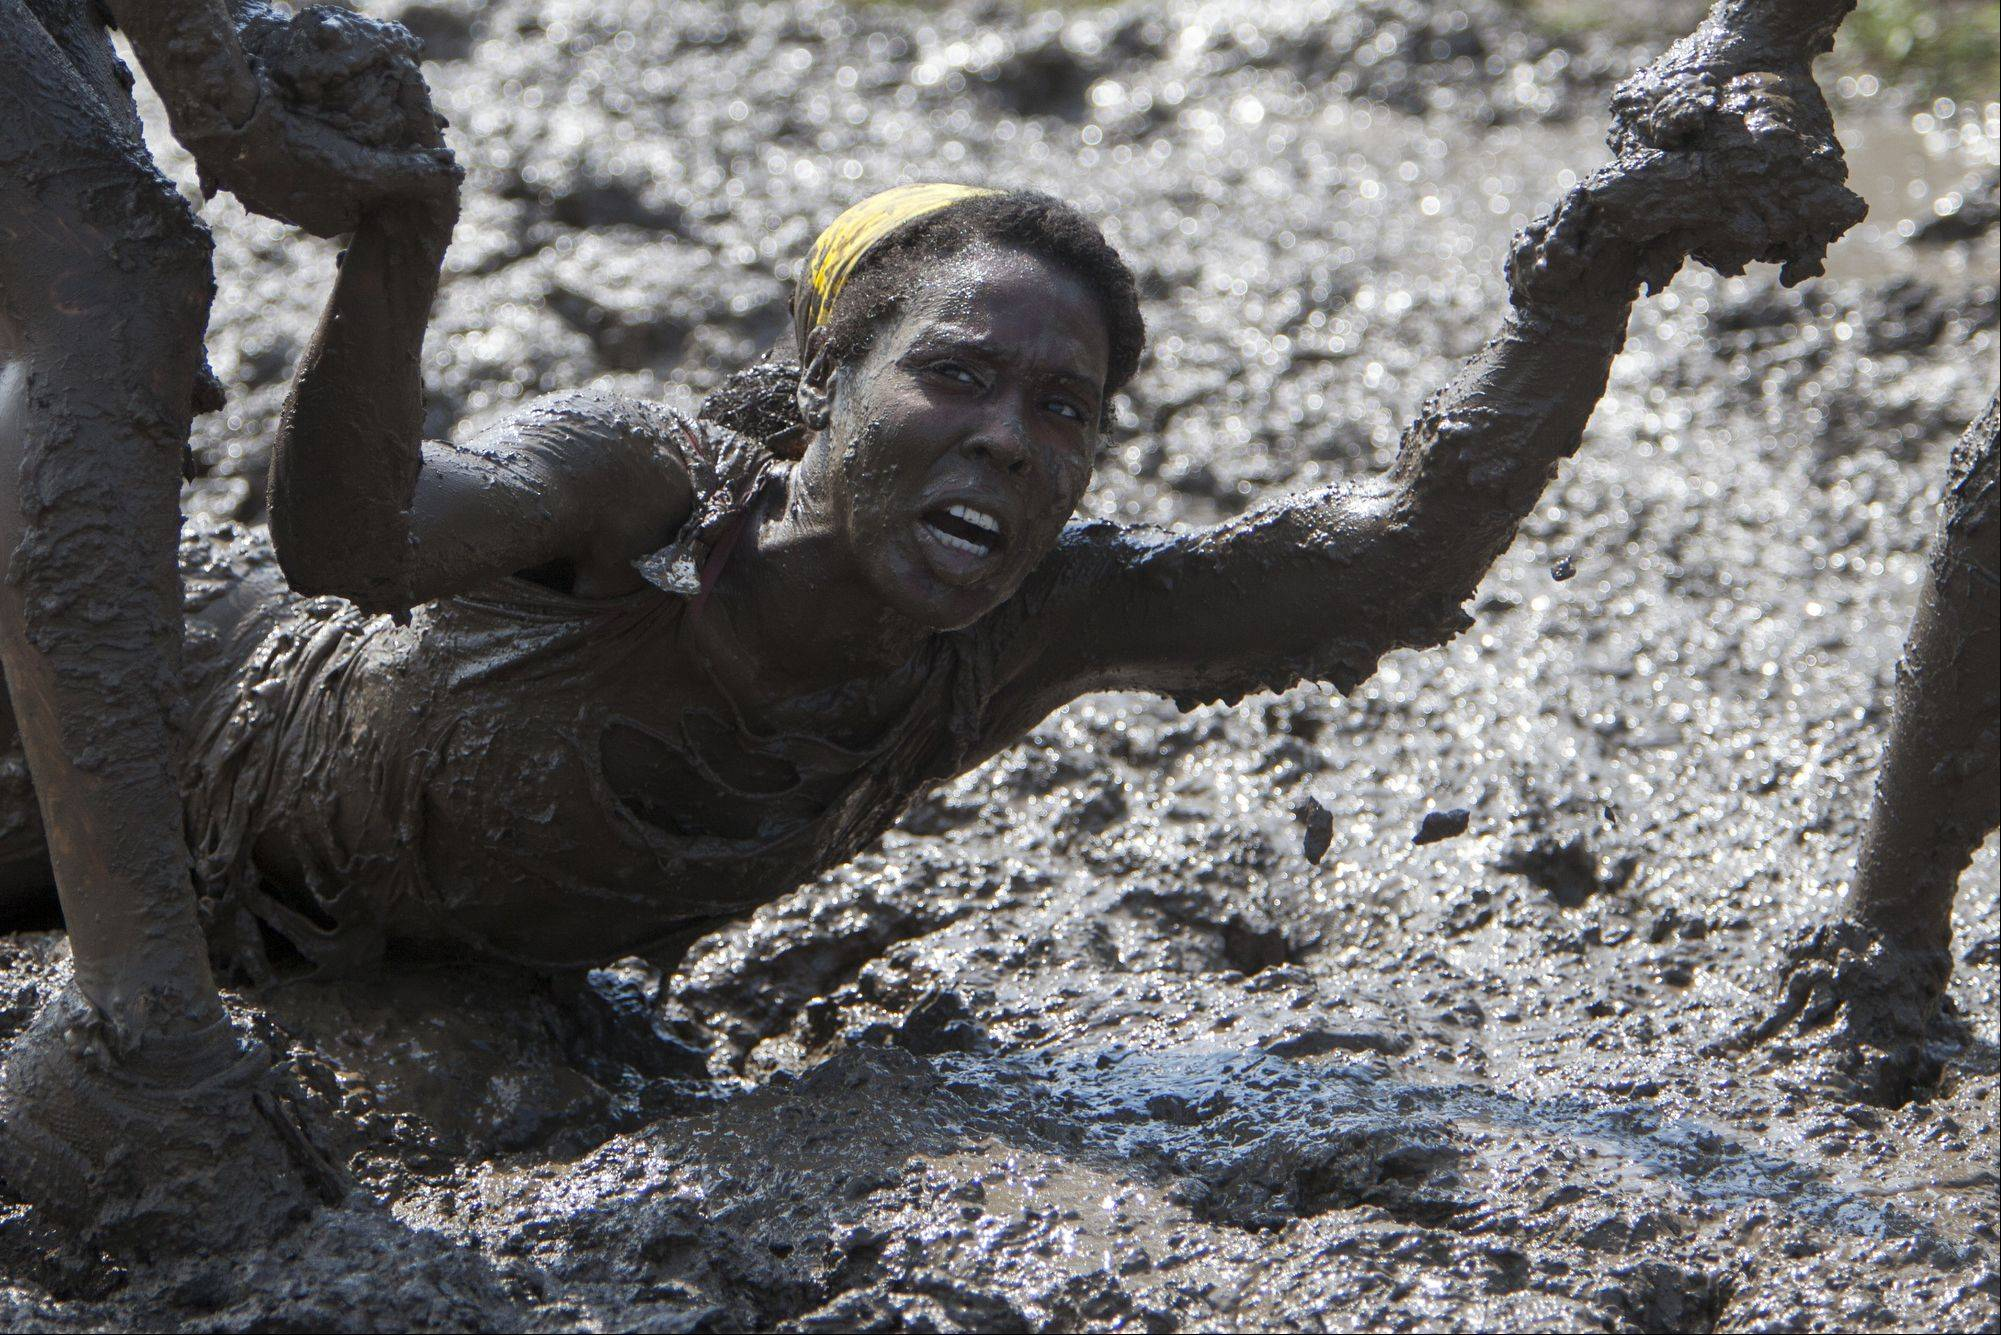 Joniqia Howard of Puerto Rico is helped out of the mud by two of her teammates during the Dirty Girl 5k Race on Saturday.